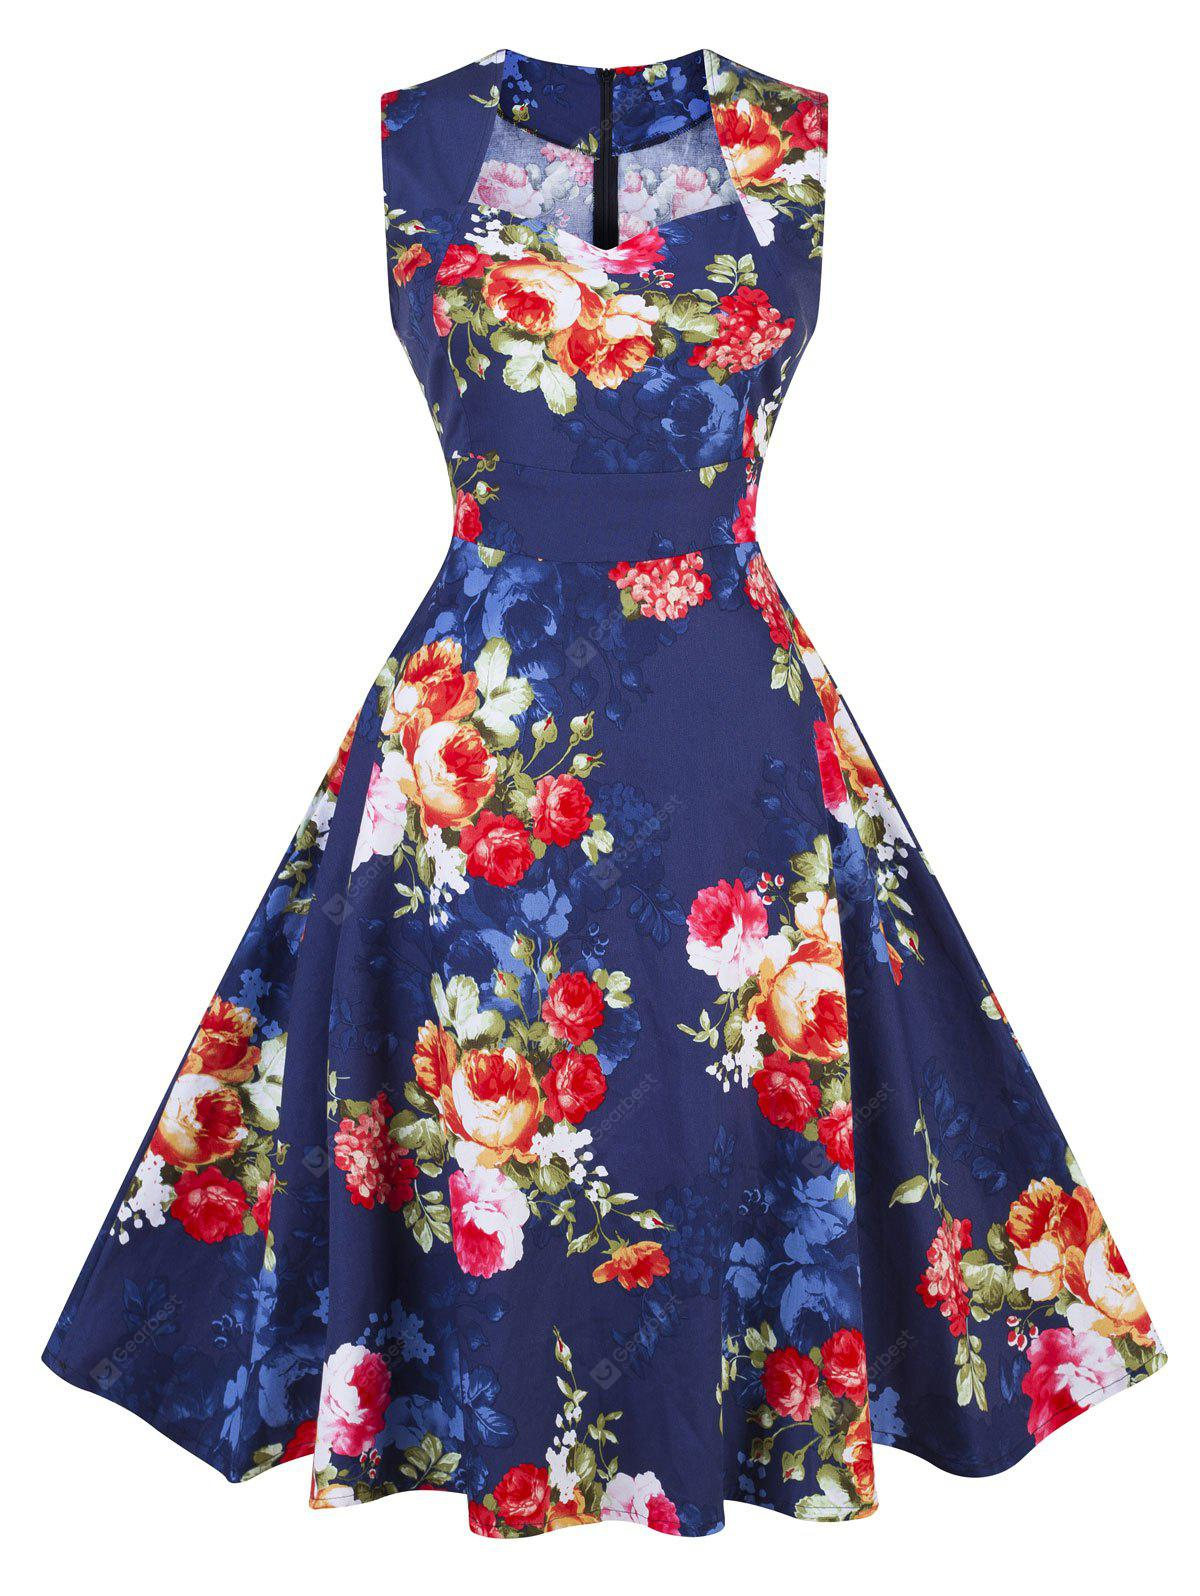 Vintage Floral Print Pin Up Party Dress